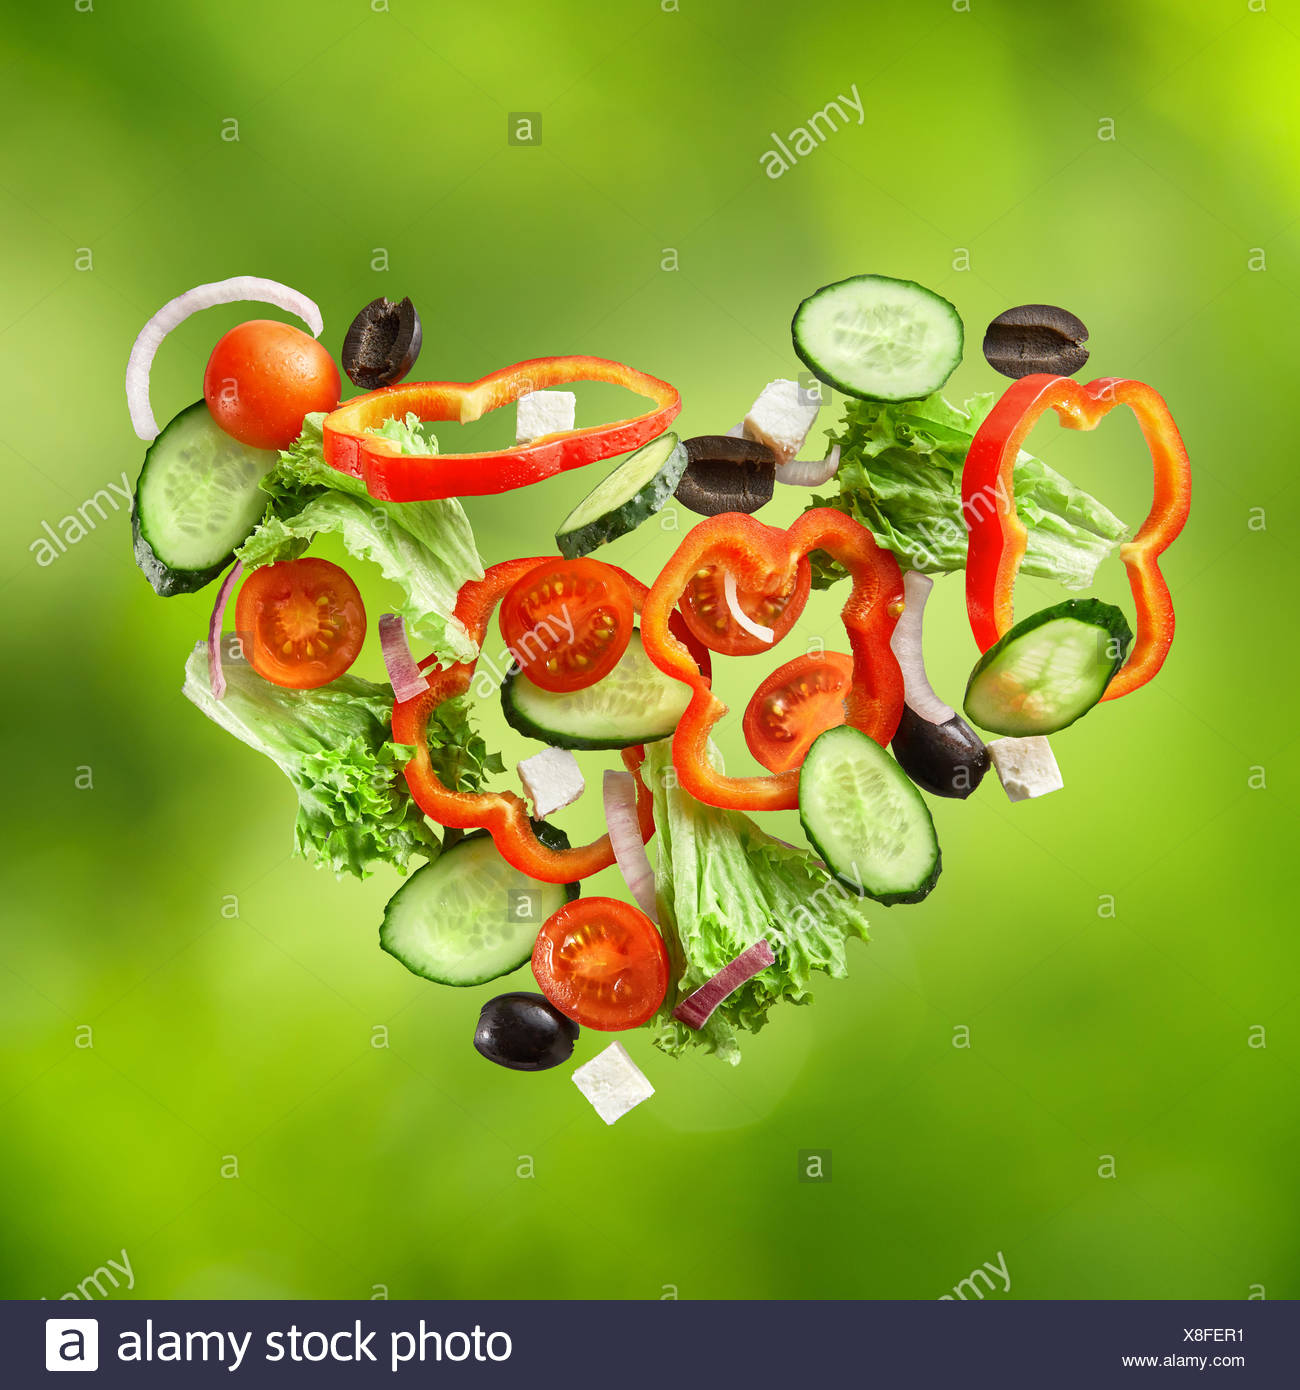 flying salad on natural green background - Stock Image